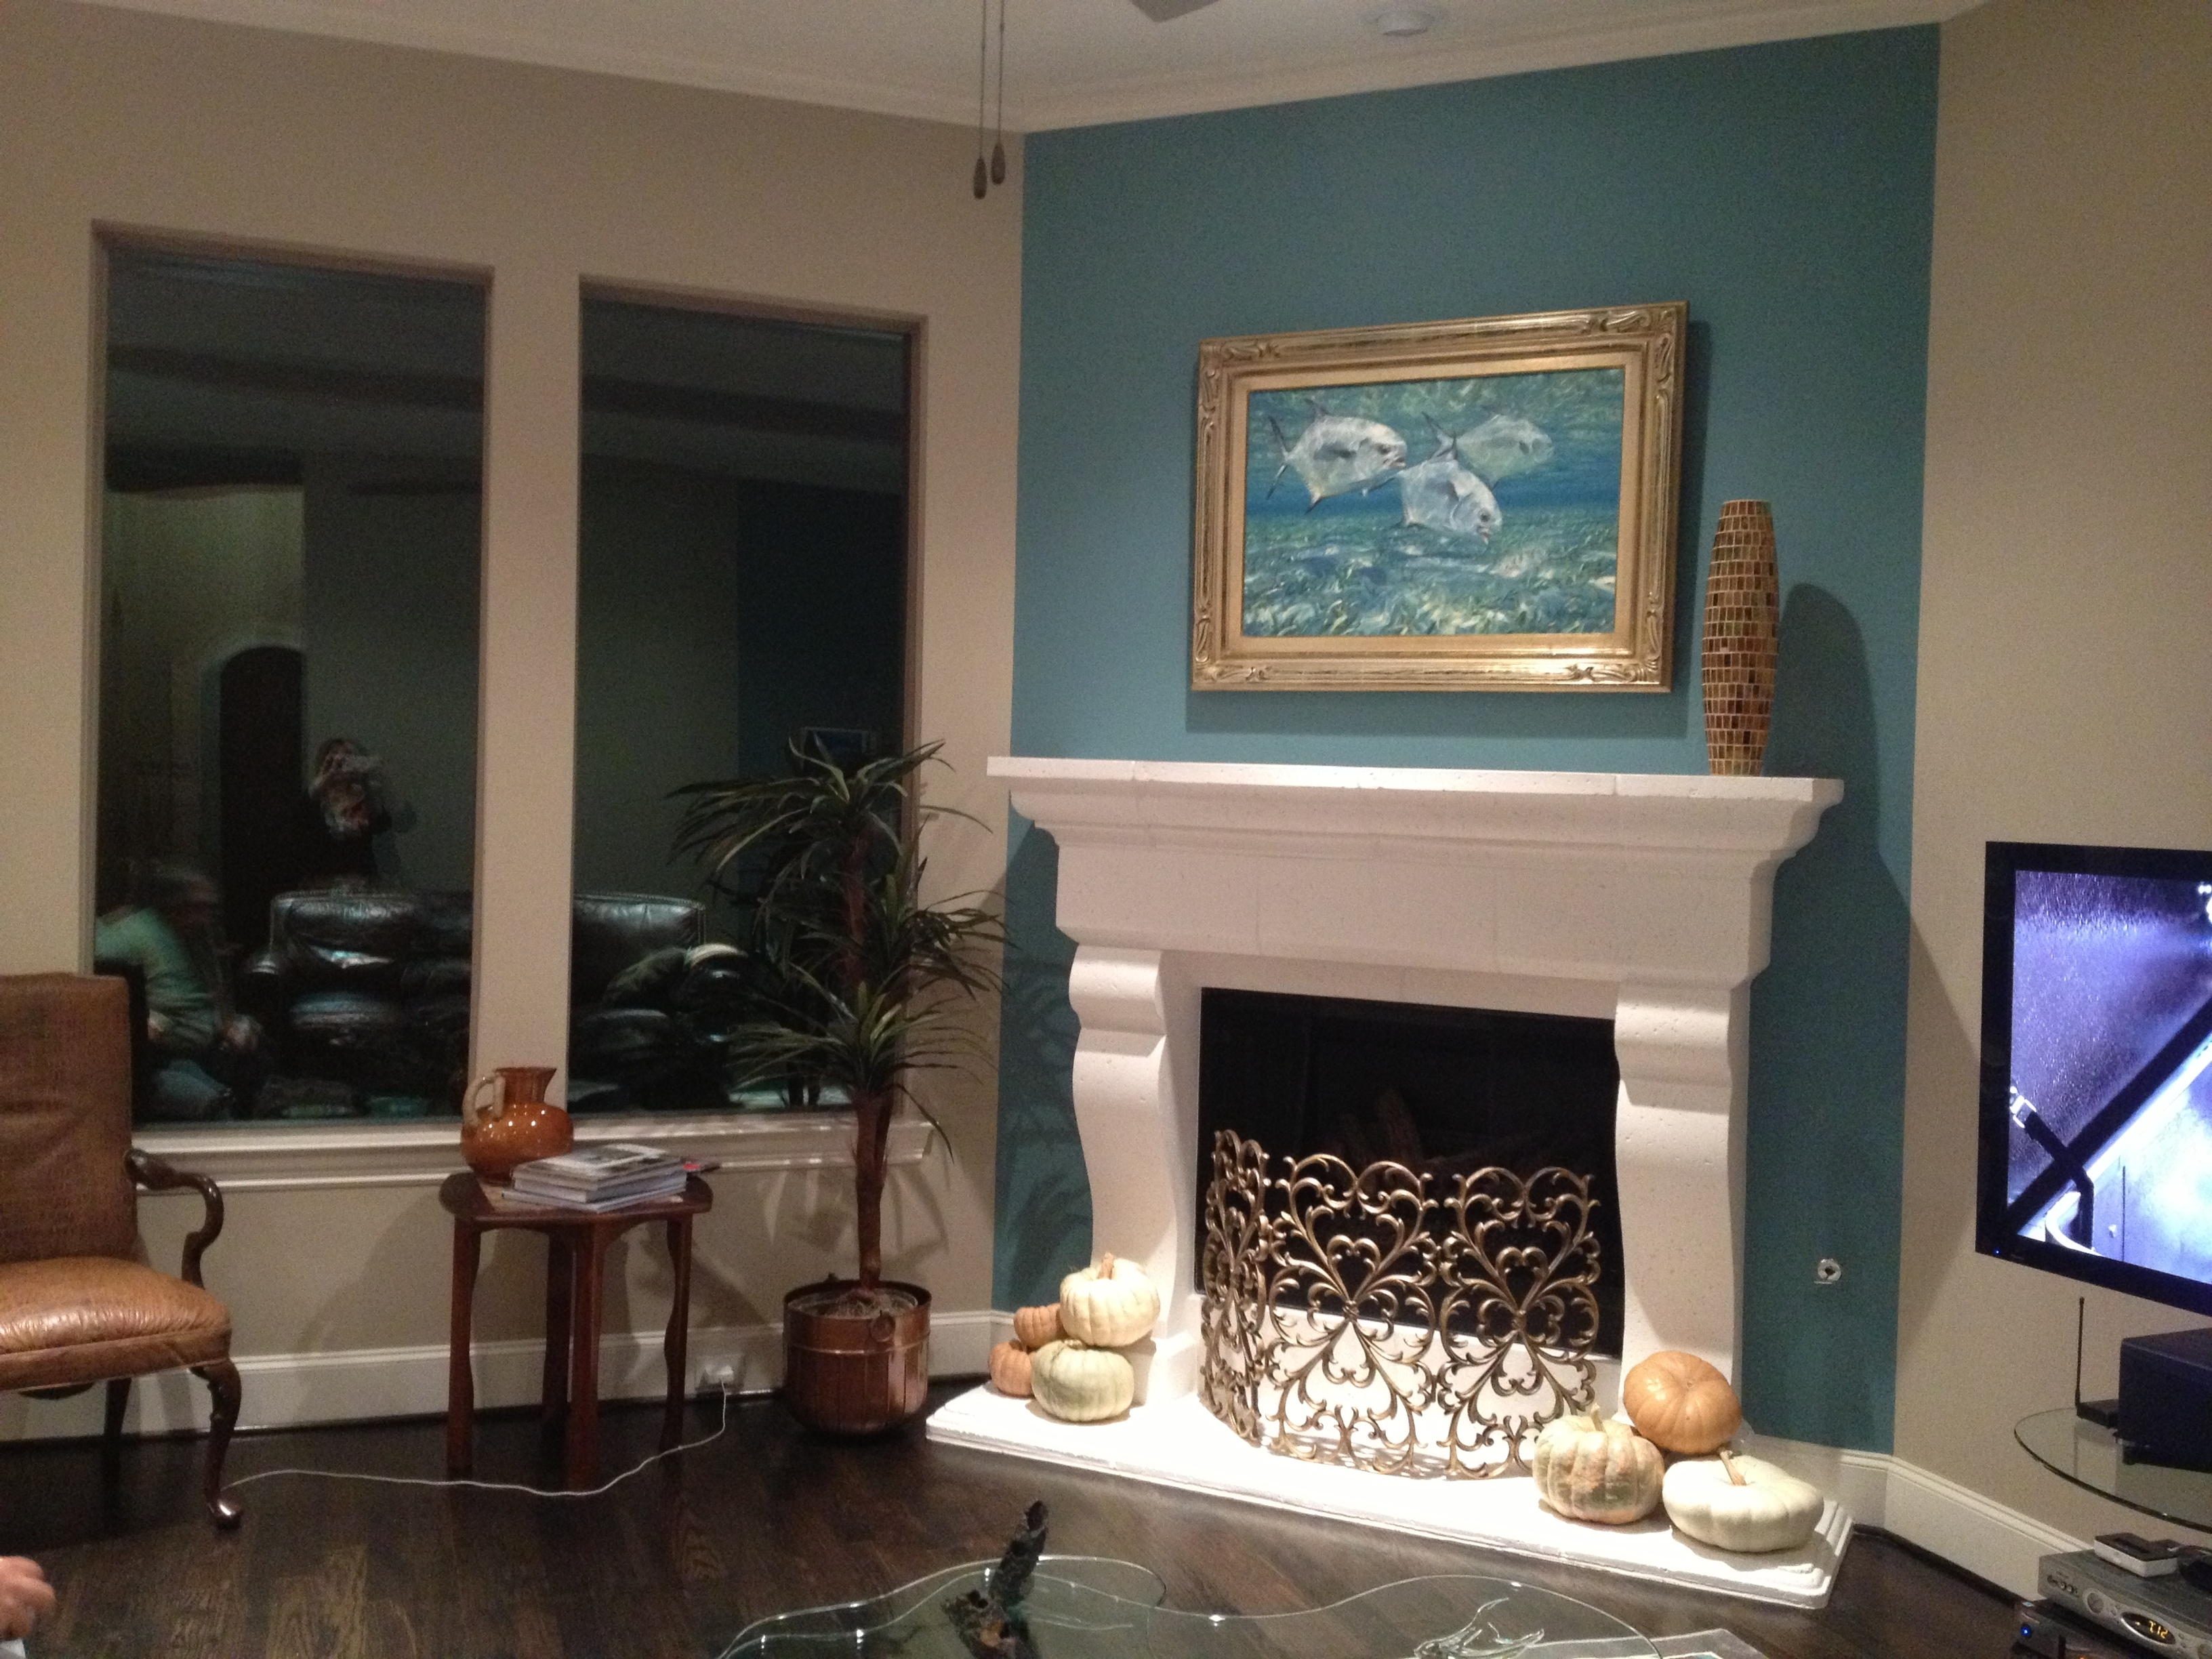 Fireplace Accent Wall Complements Painting (View 3 of 15)